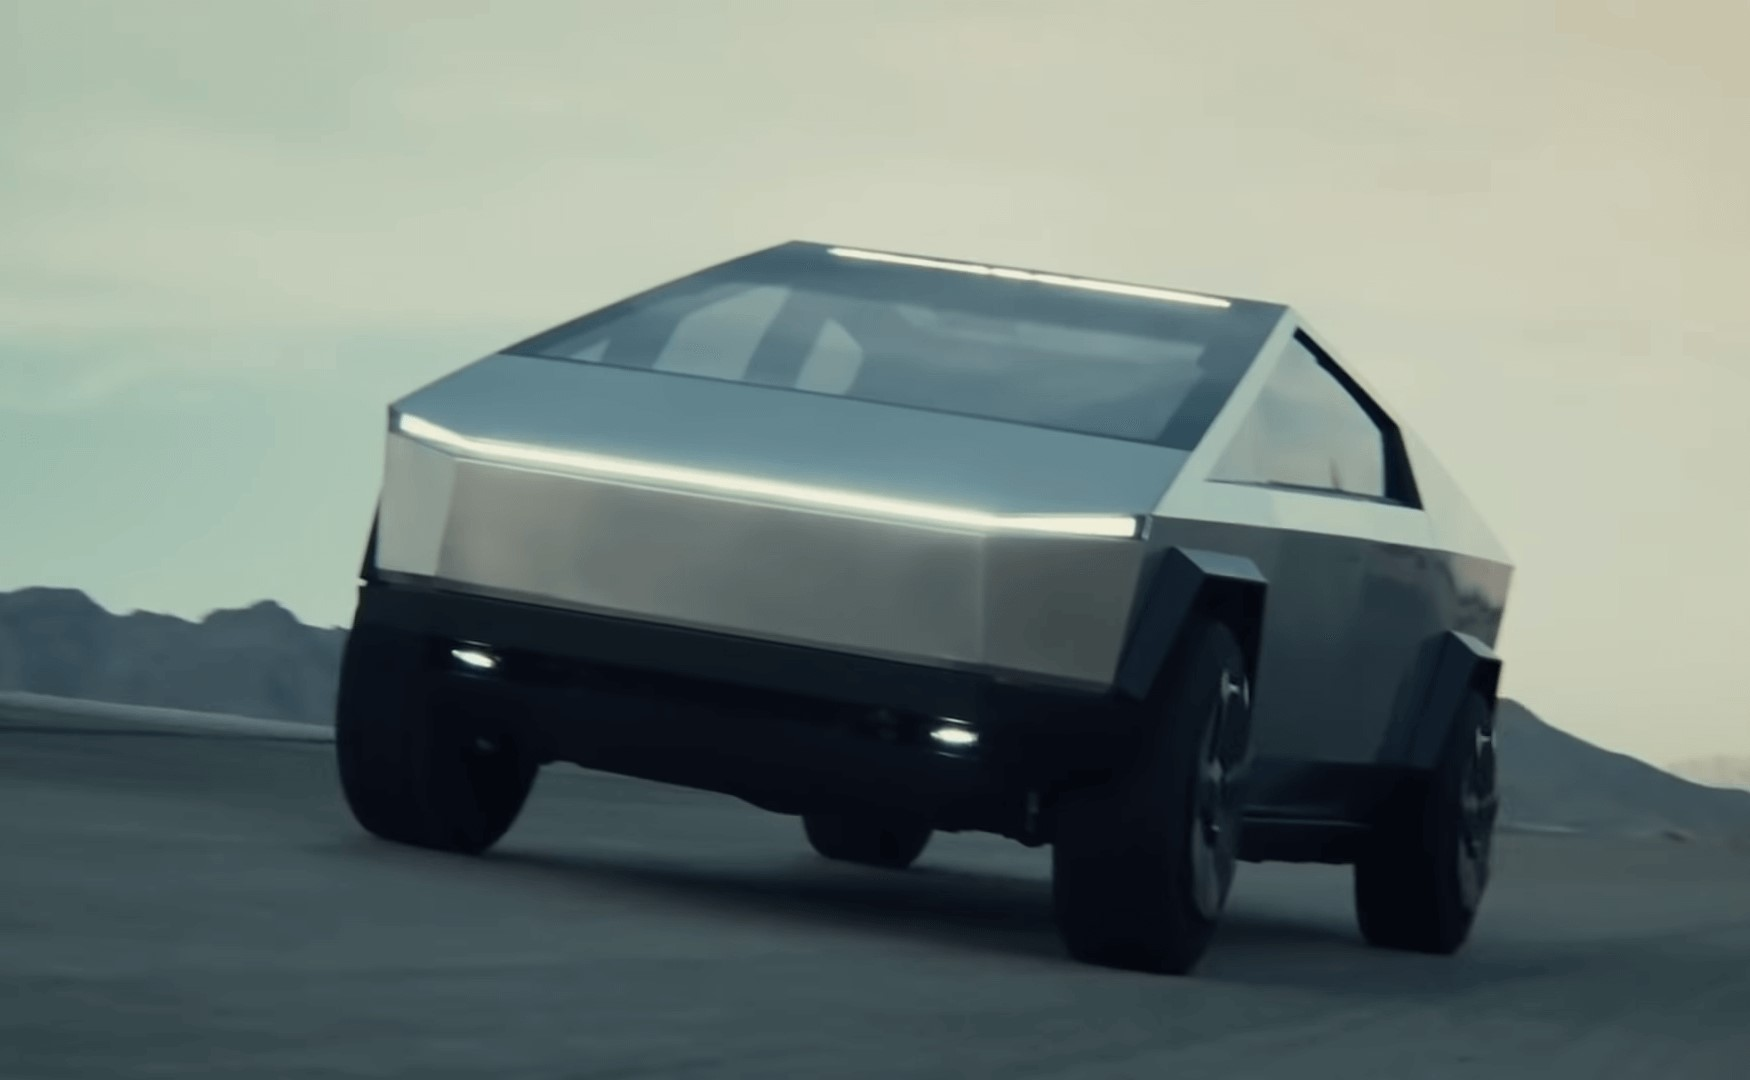 New-Tesla-Cybertruck-The-Reinvented-Pickup-Truck